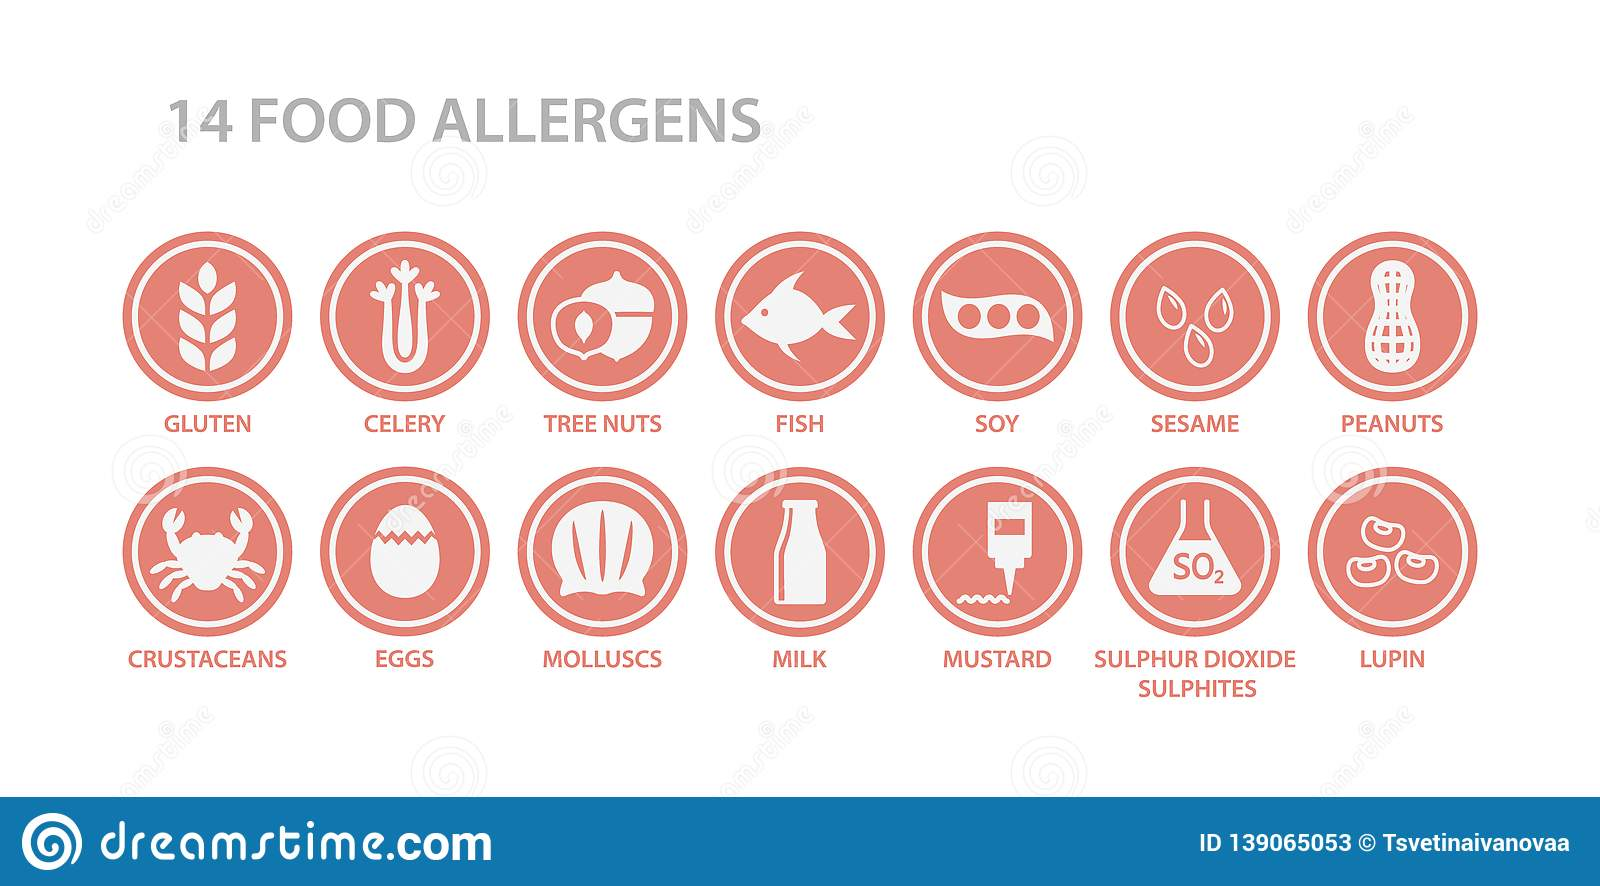 14 food allergens menu list circle icon set. Food allergen white icons in pink circles.